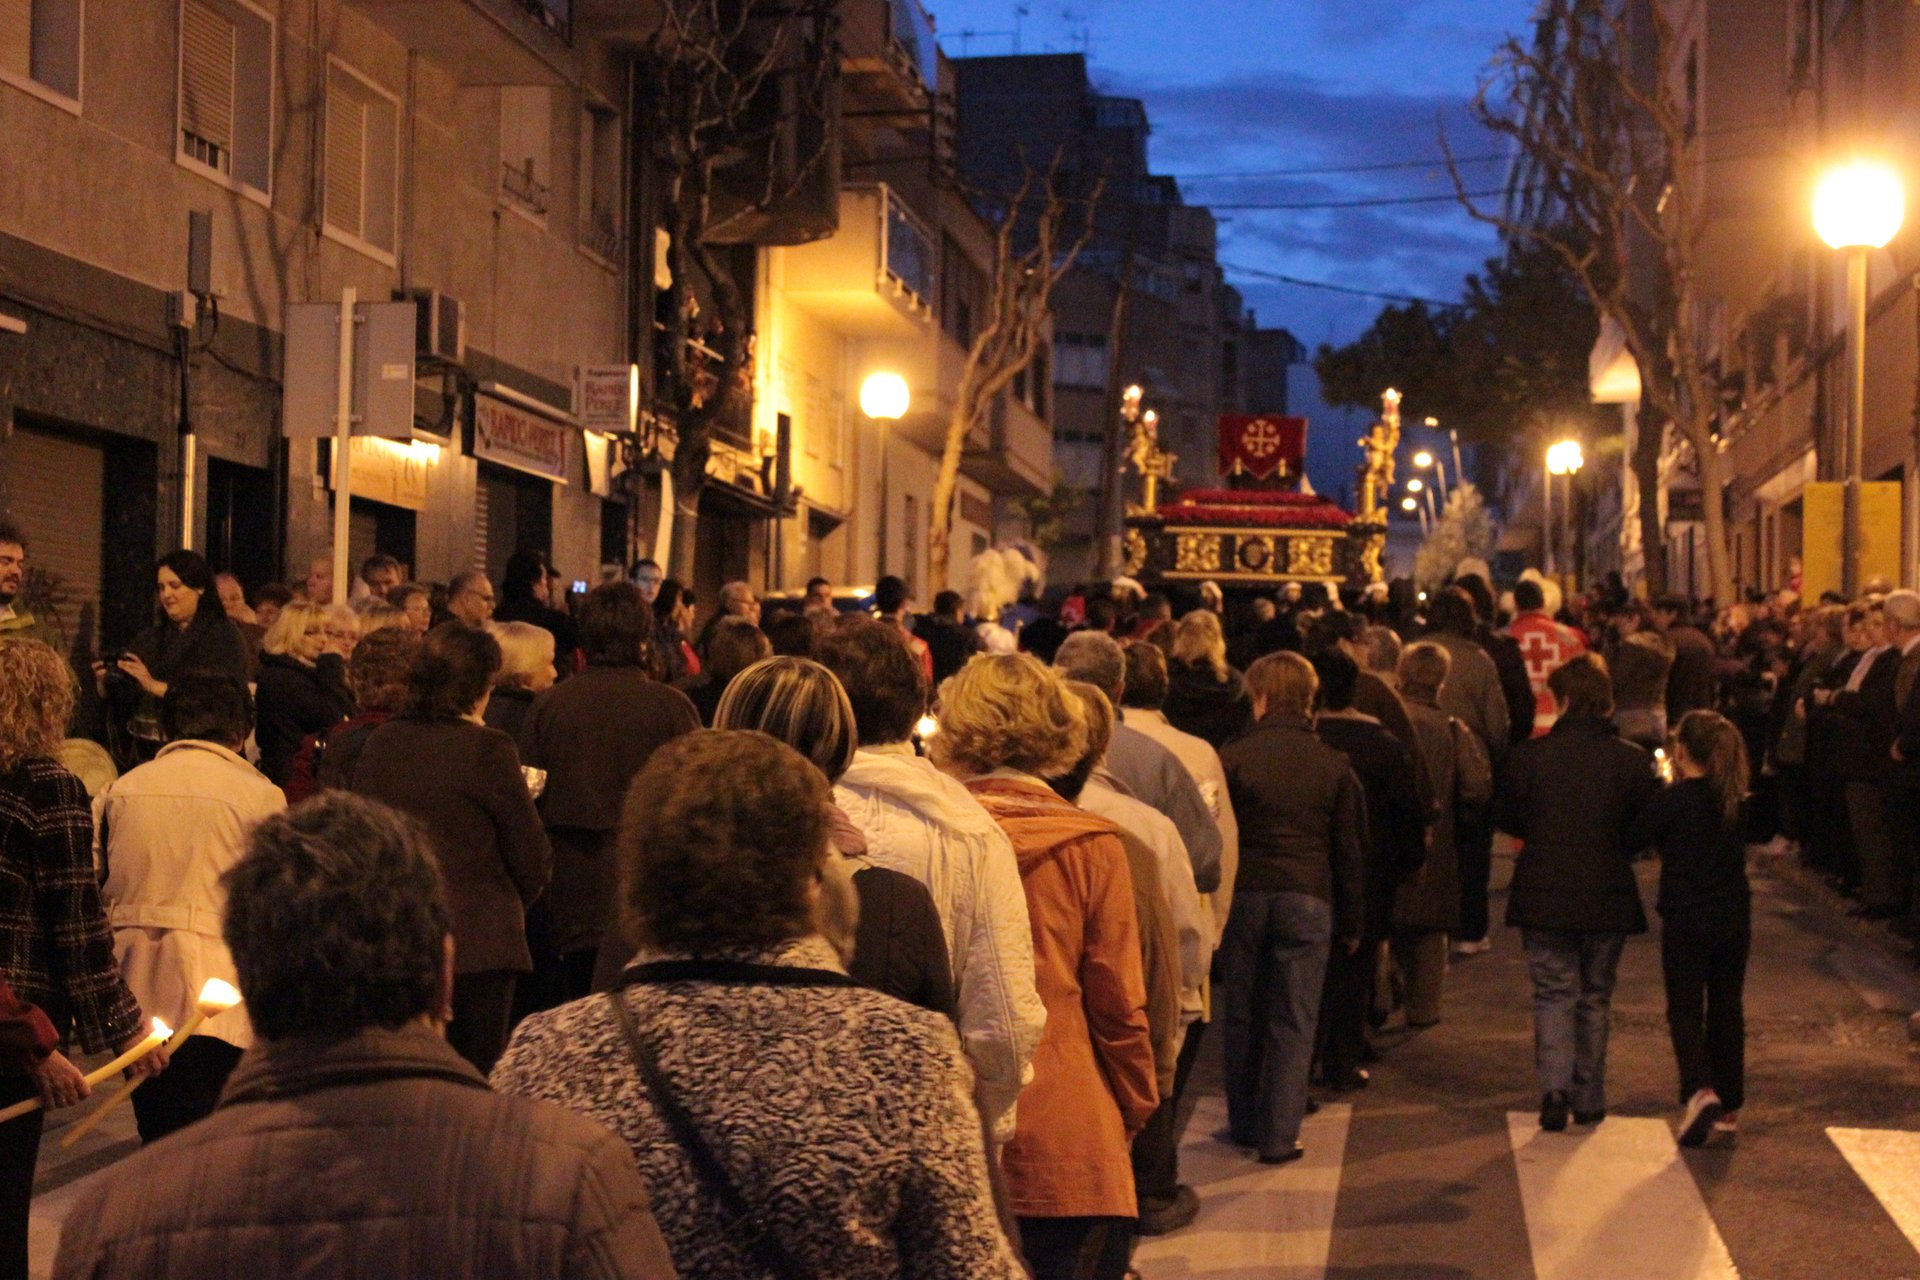 Holy Saturday procession in L'Hospitalet de Llobregat 2020